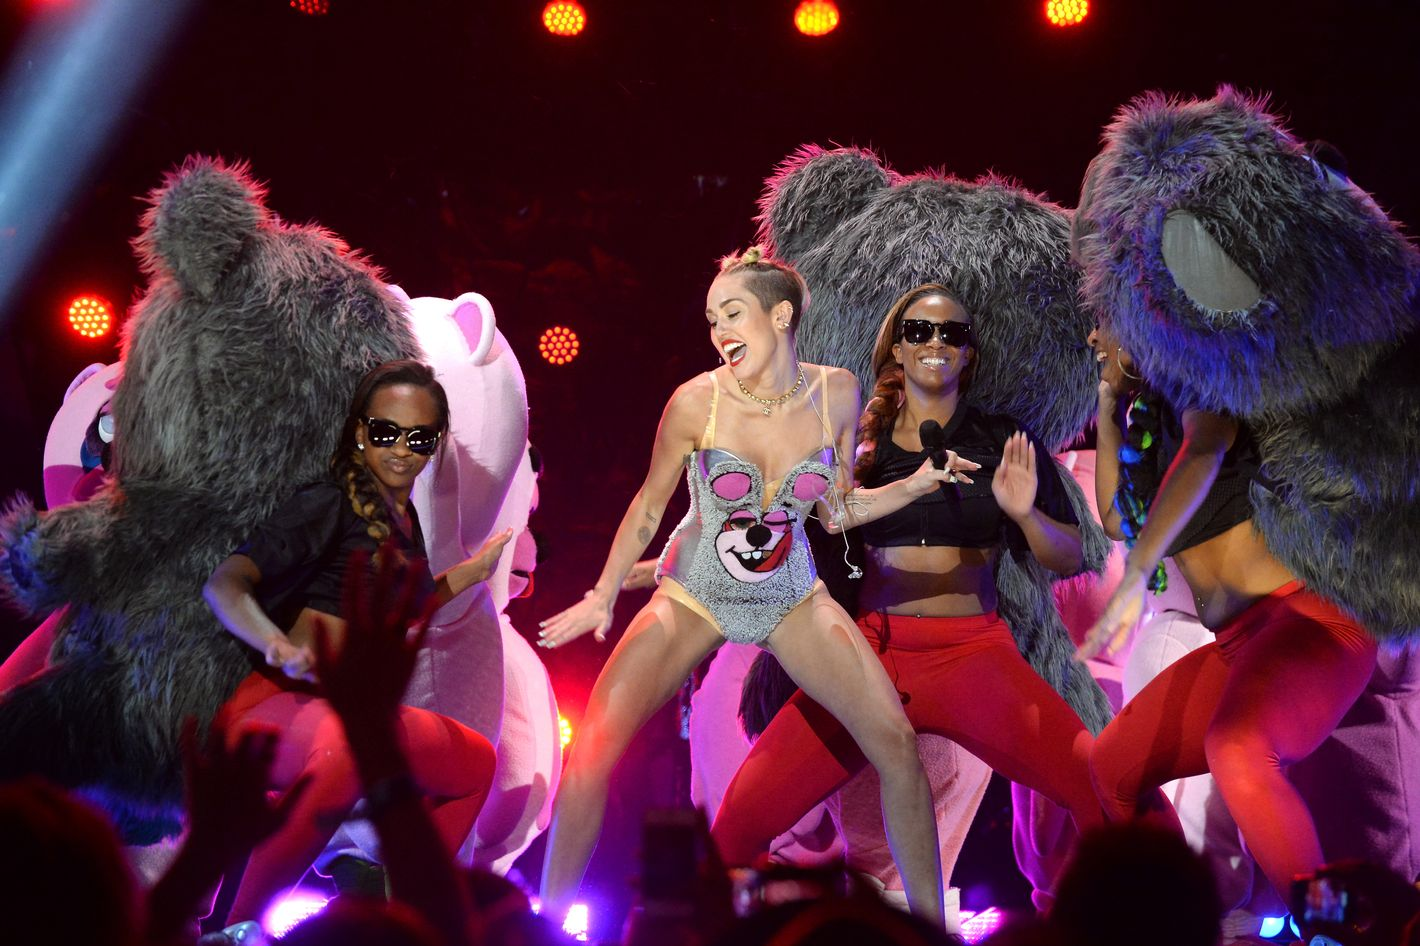 Miley Cyrus Sex Porn - Critics Roundup: What Everyone Said About Miley Cyrus's VMA Performance